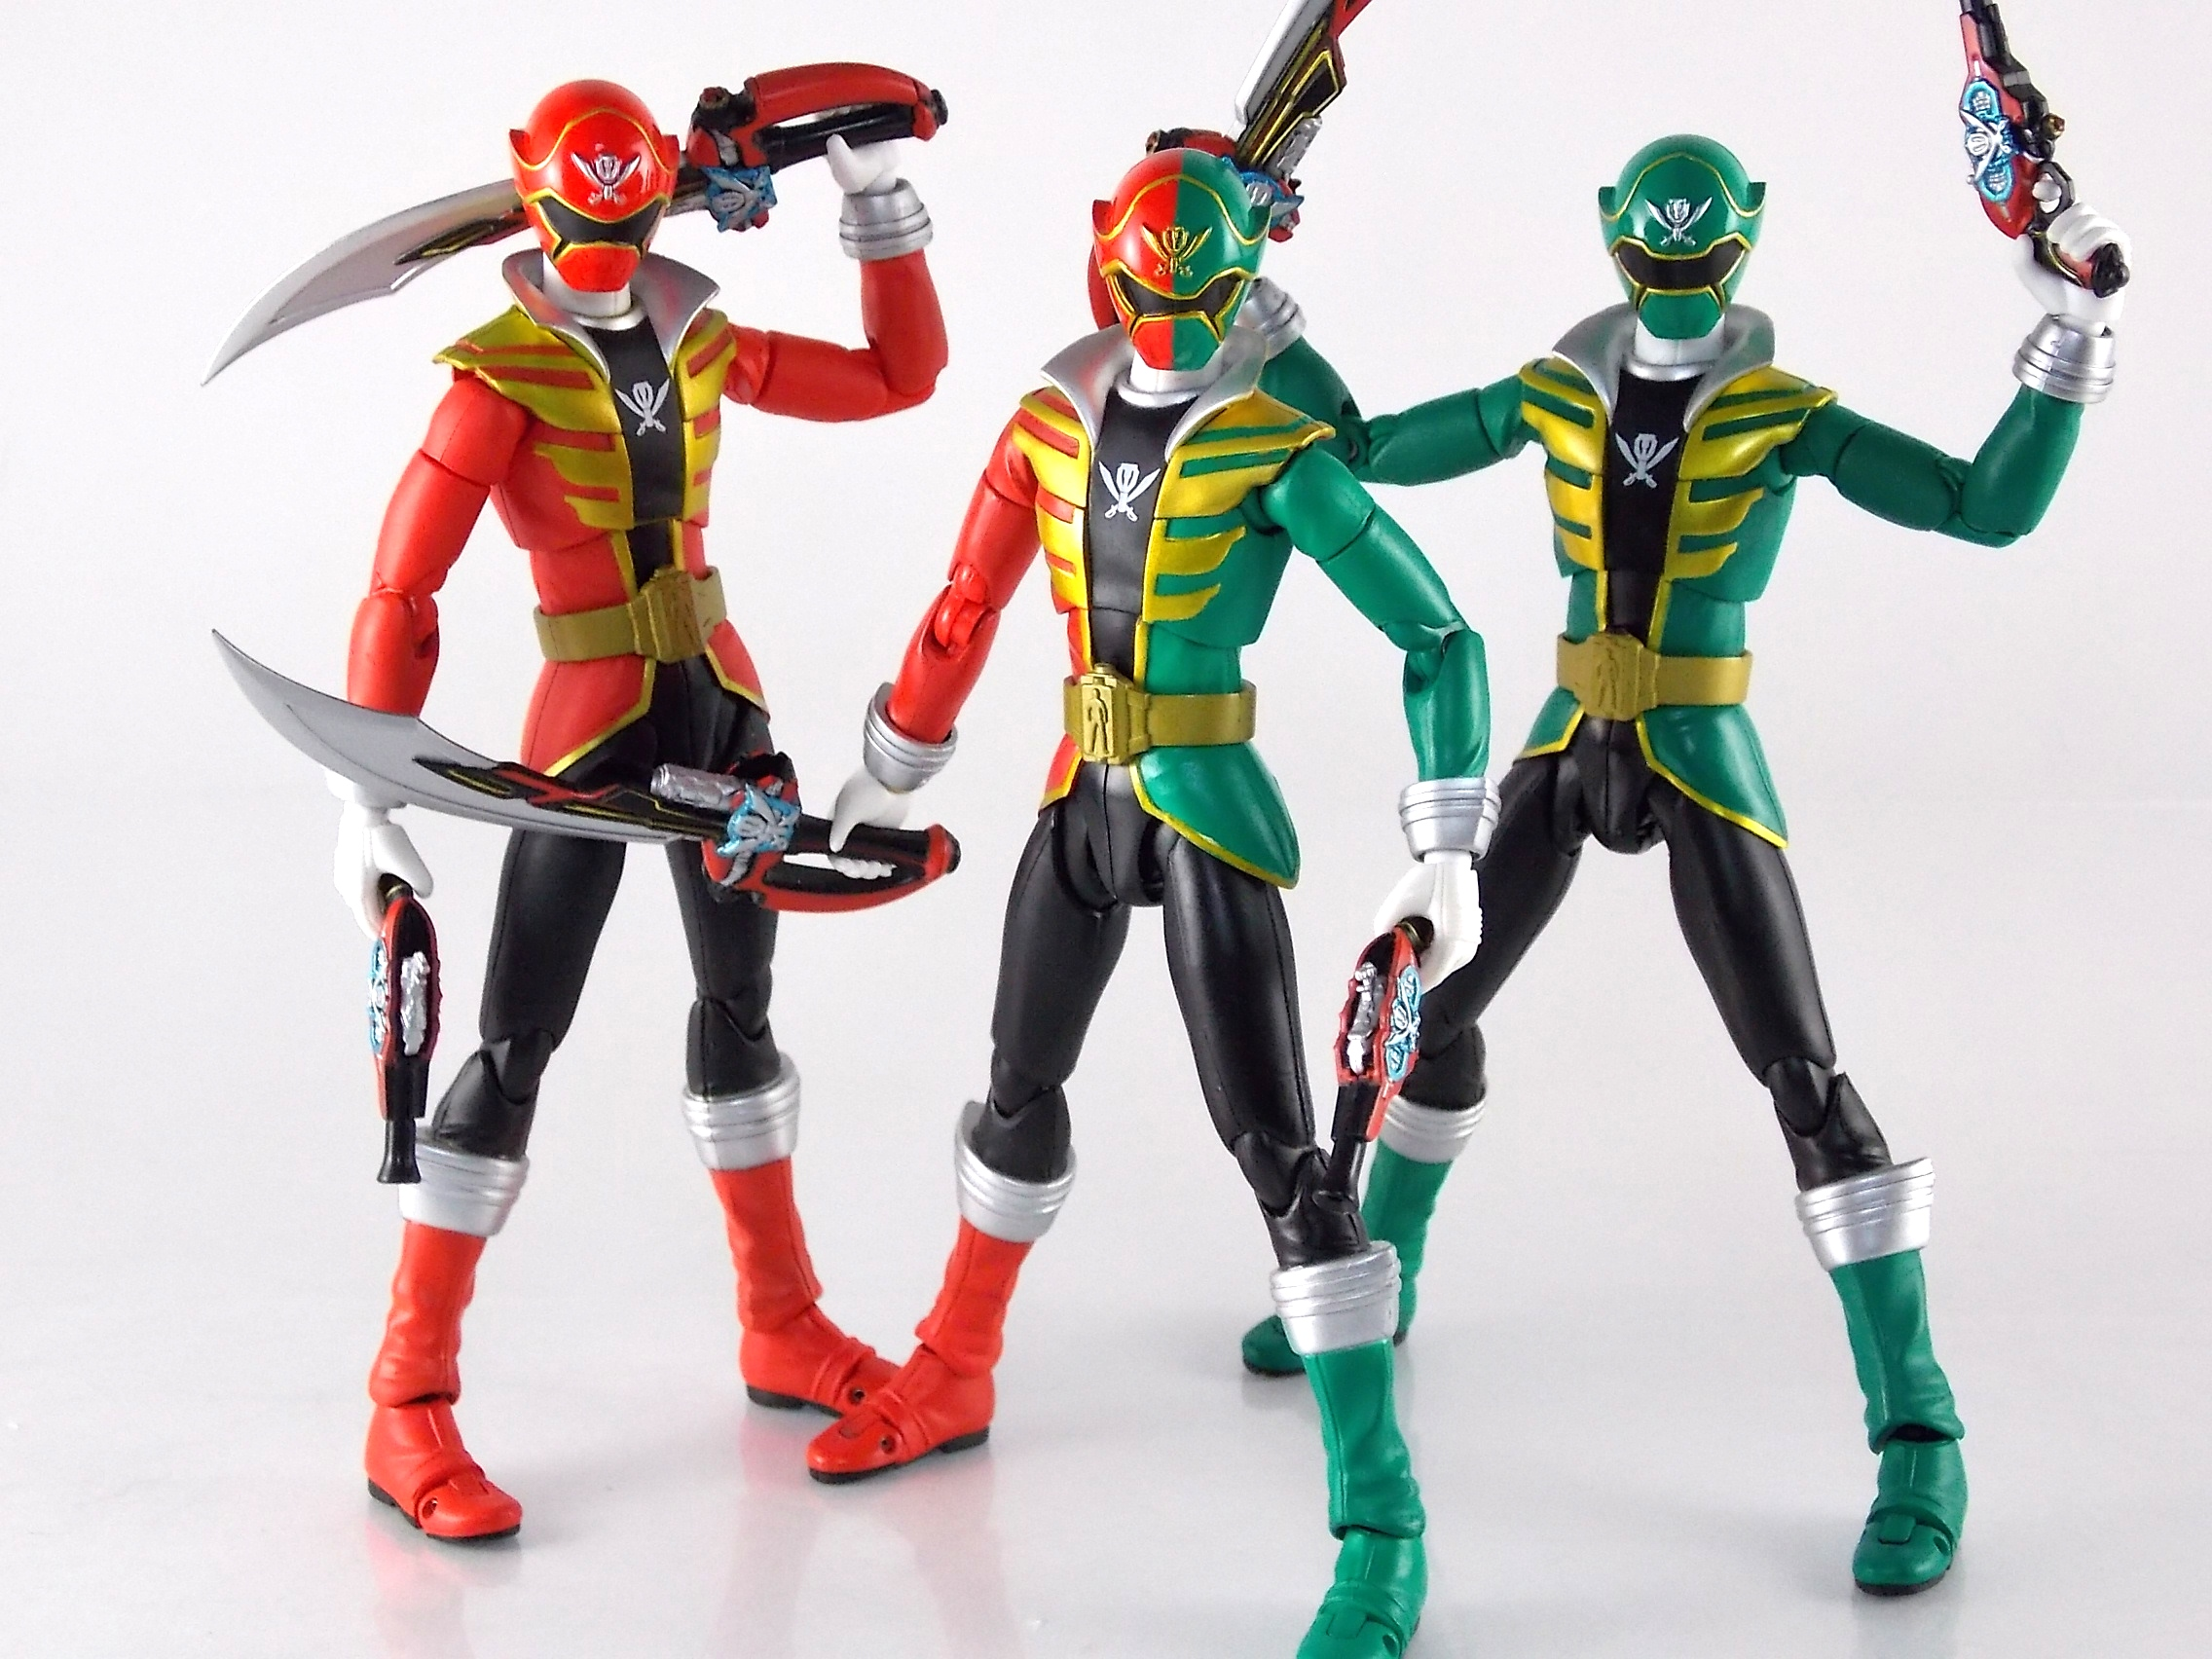 S.H. Figuarts Gokai Christmas Gallery 2.0 - Toku Toy Box Entry ...